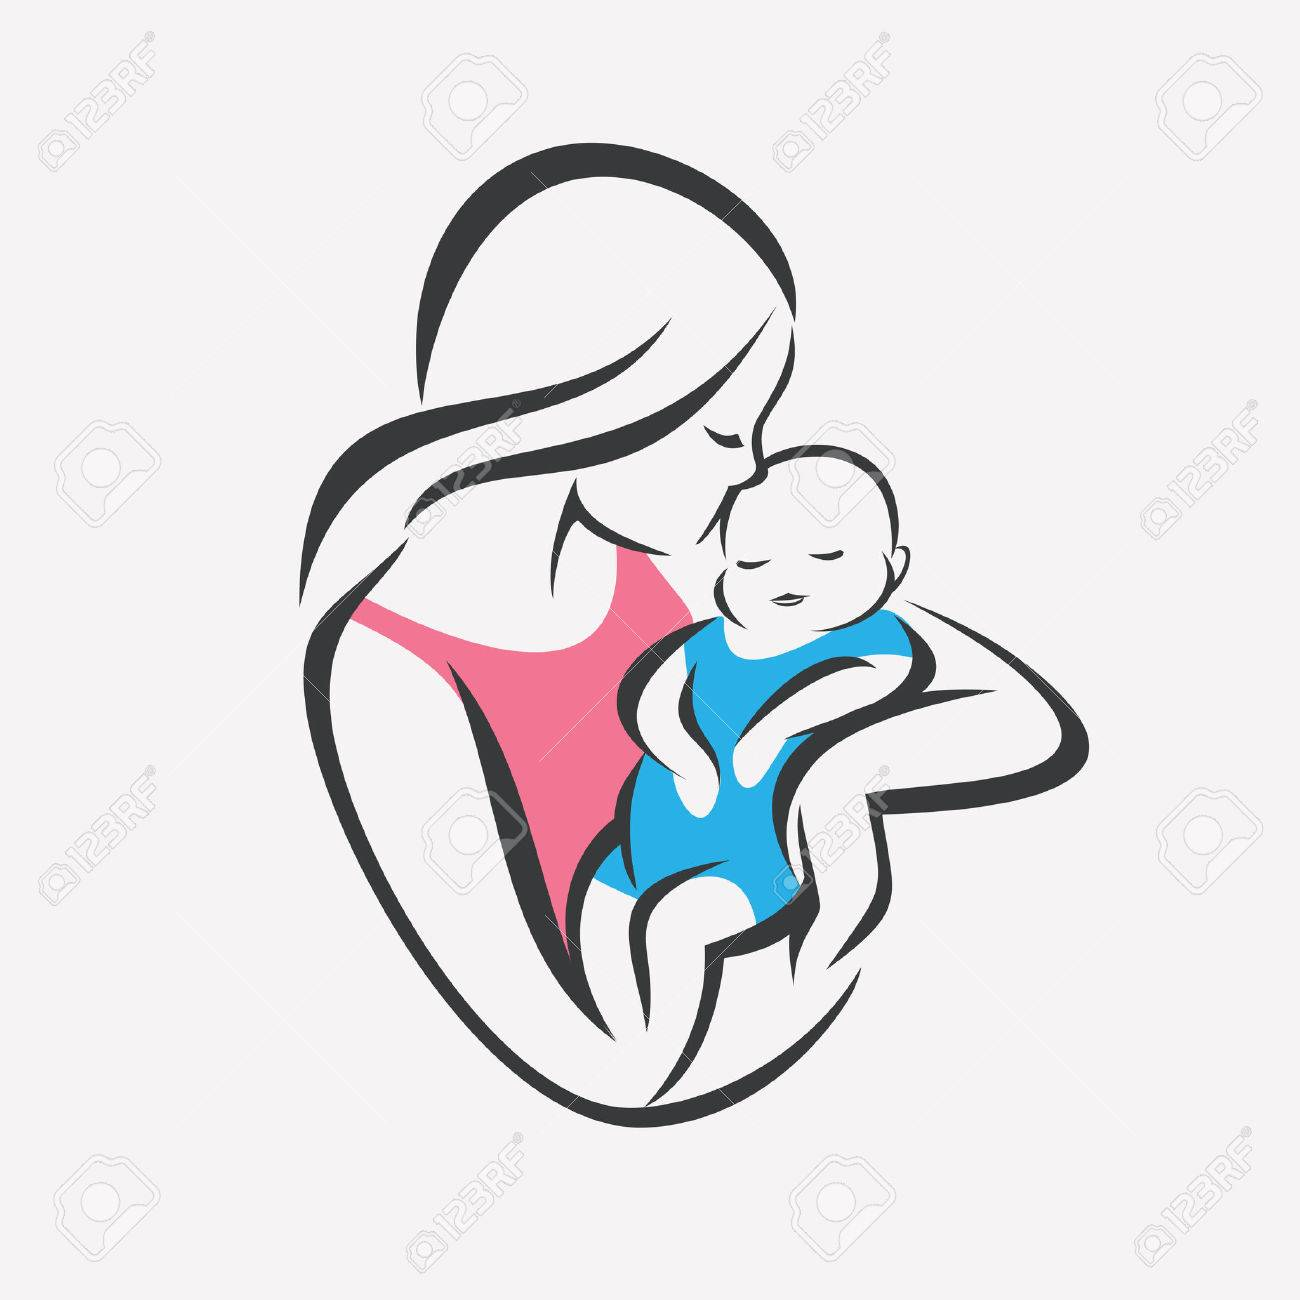 mother and baby stylized vector symbol, mom kiss her child logo template - 87115259